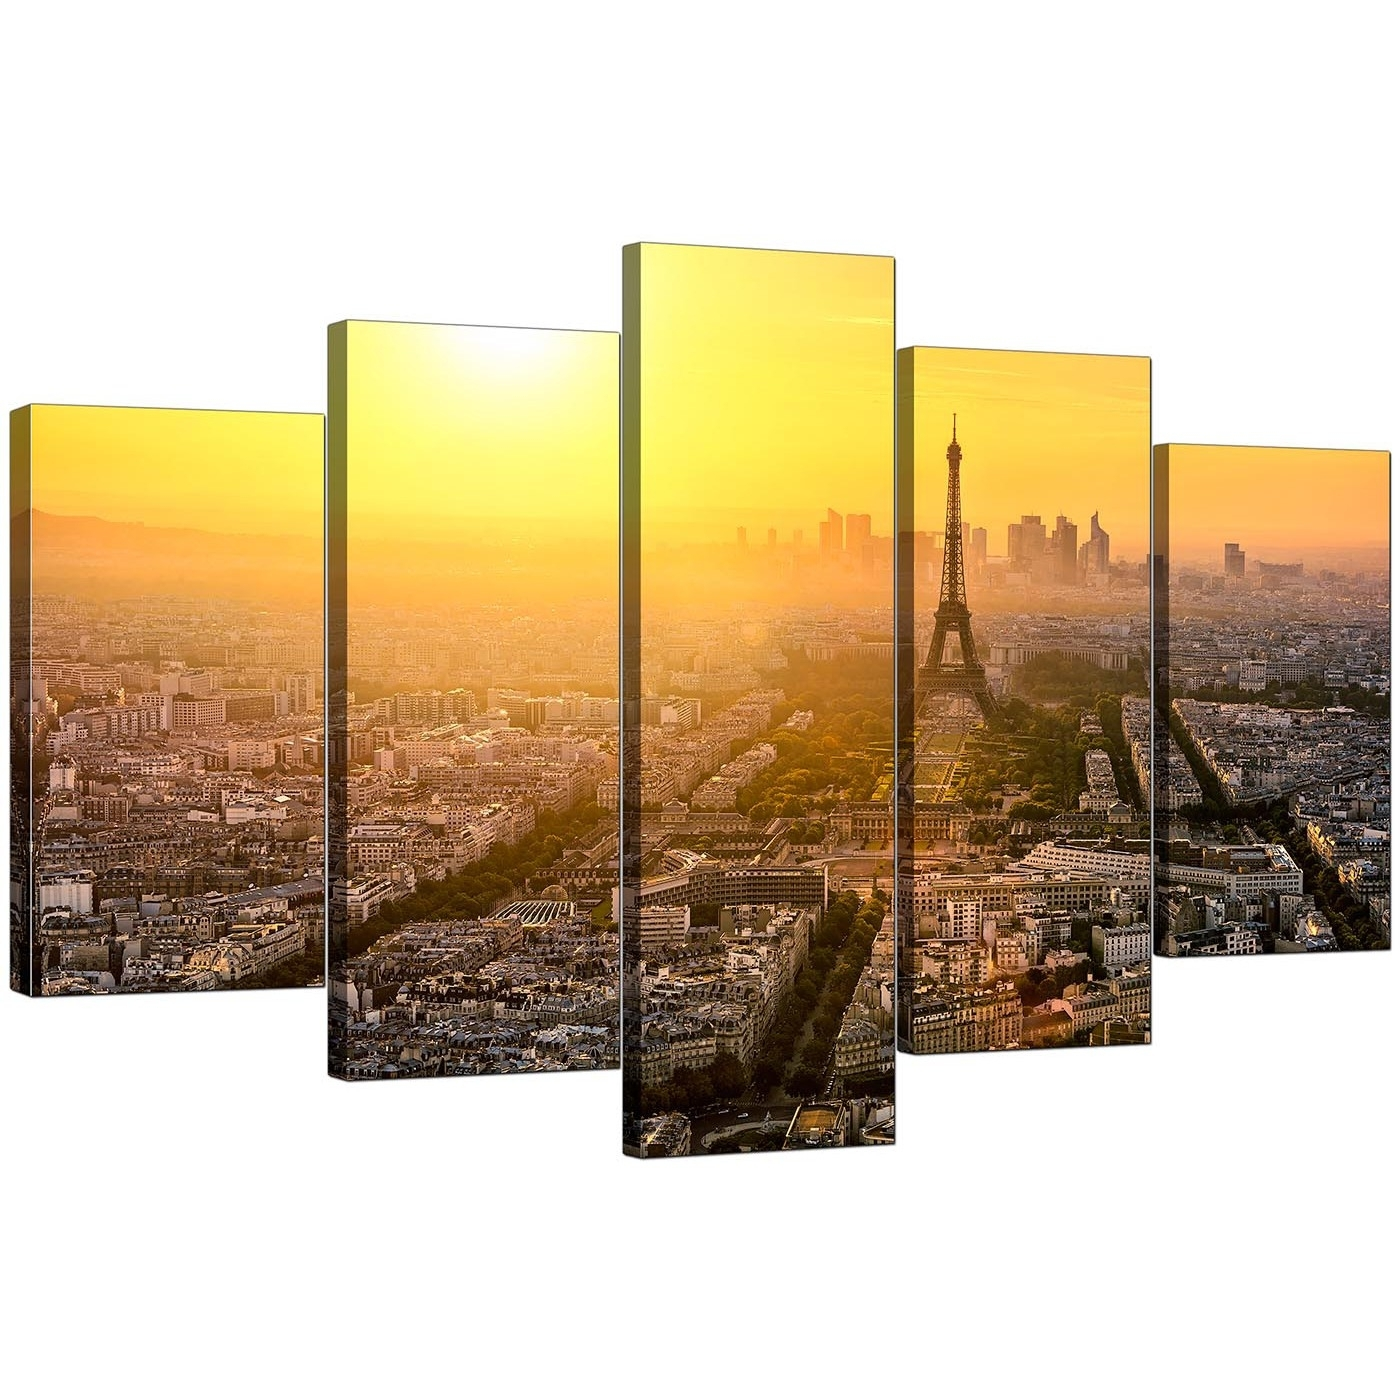 Paris Skyline Canvas Pictures For Your Office – 5 Panel With Regard To 2018 Canvas Wall Art Of Paris (View 11 of 15)